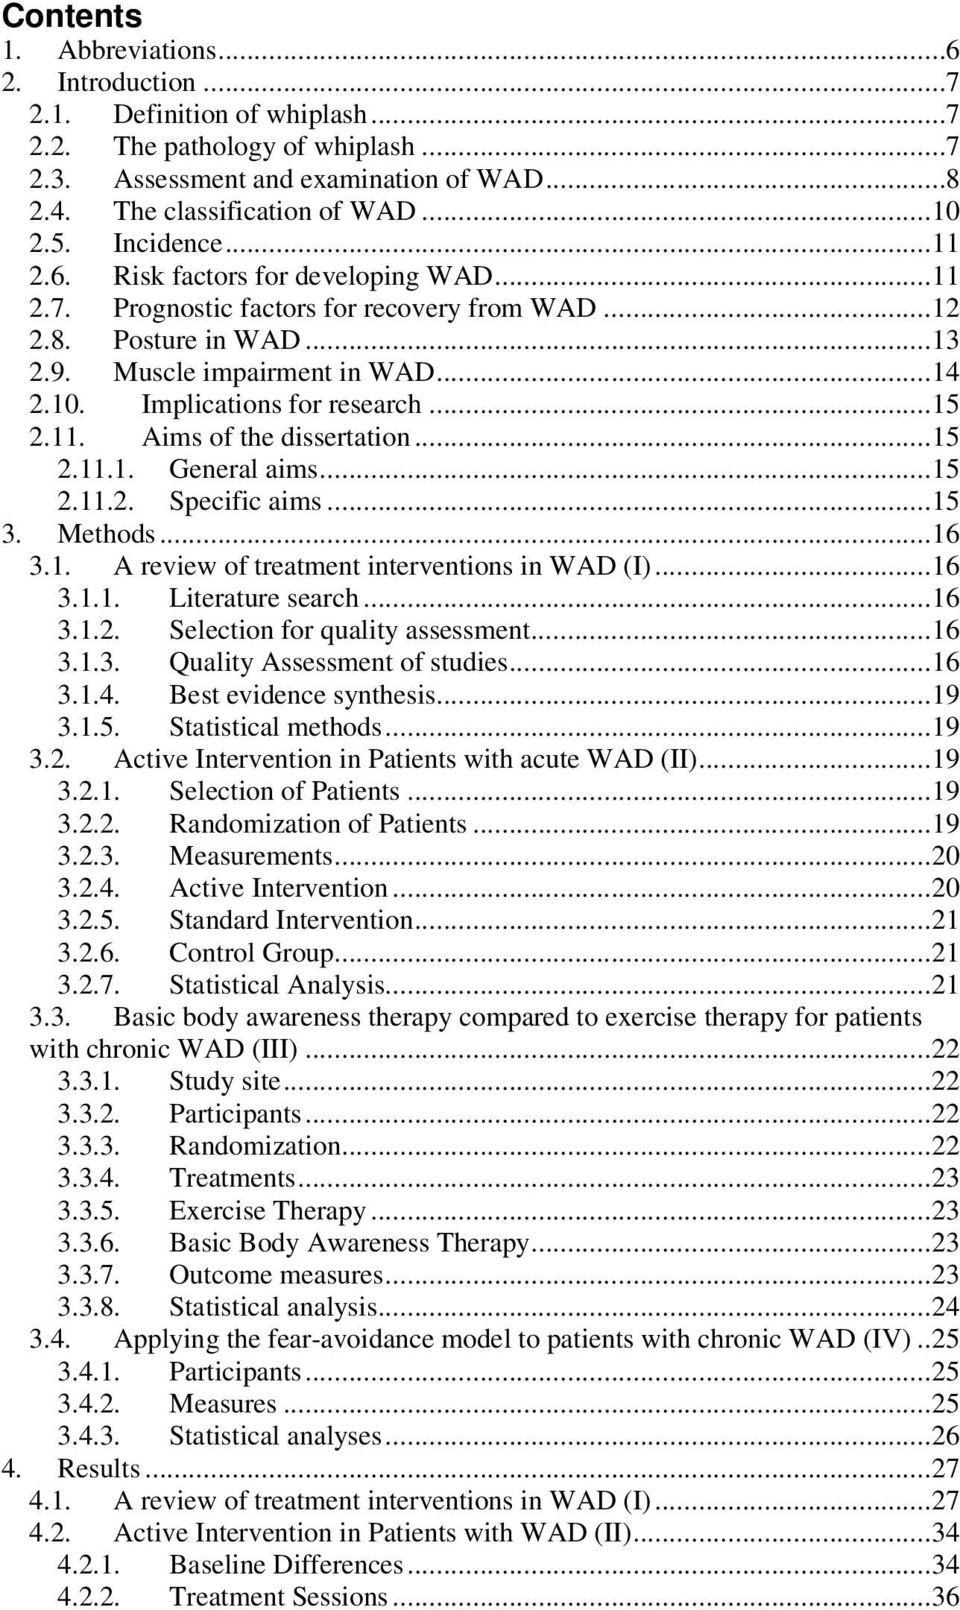 ..15 2.11. Aims of the dissertation...15 2.11.1. General aims...15 2.11.2. Specific aims...15 3. Methods...16 3.1. A review of treatment interventions in WAD (I)...16 3.1.1. Literature search...16 3.1.2. Selection for quality assessment.